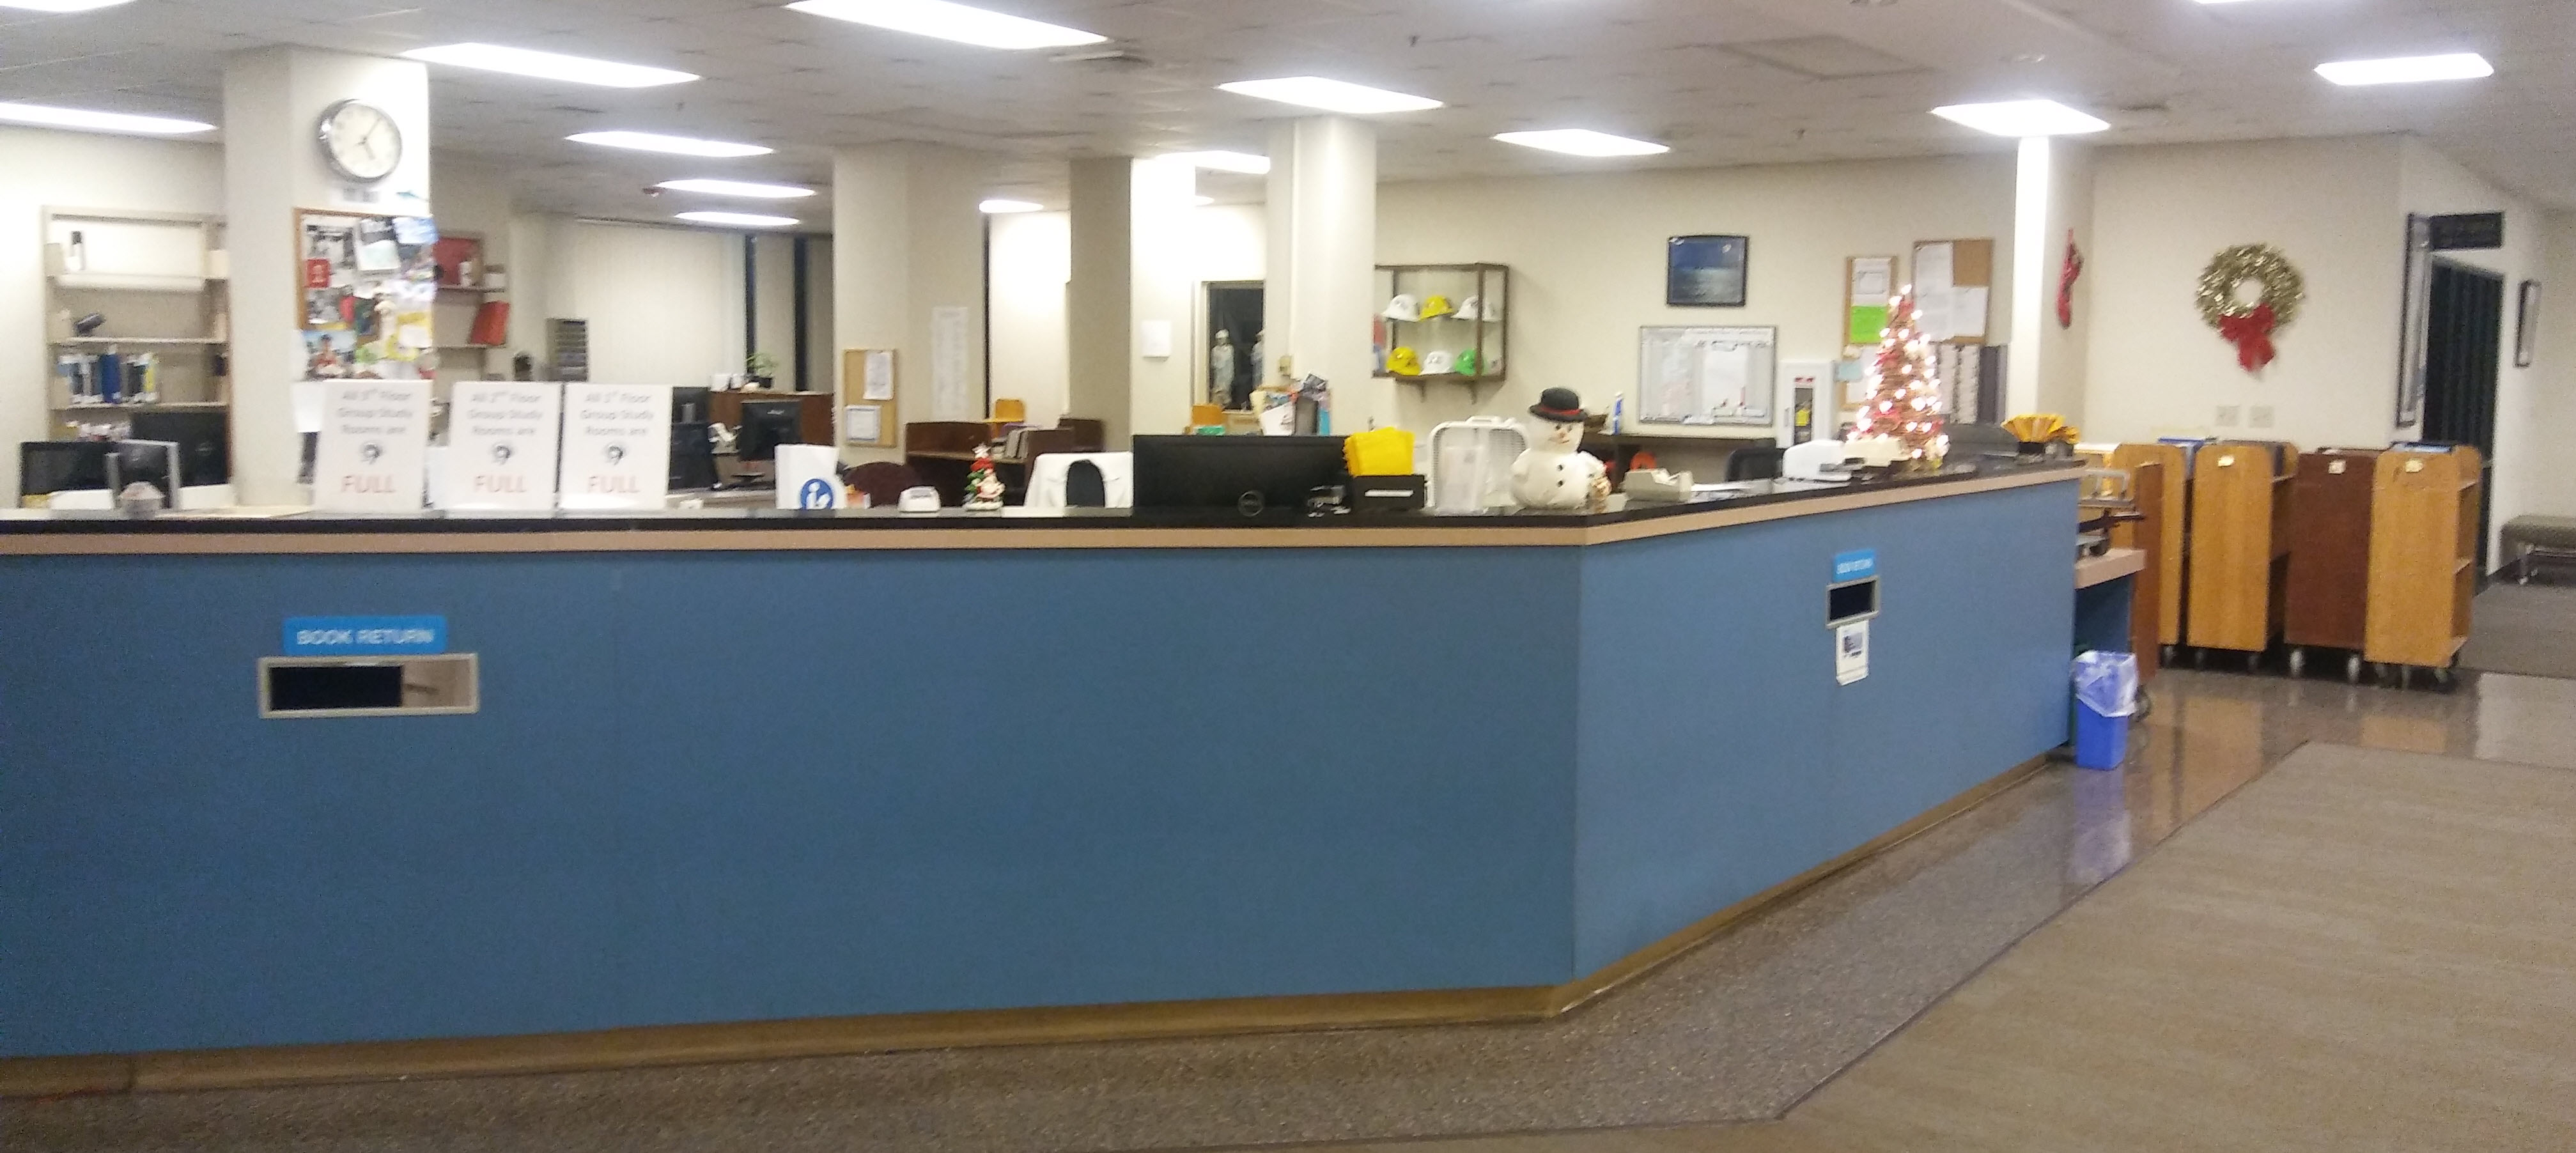 photo of the circulation desk at the front of the library.